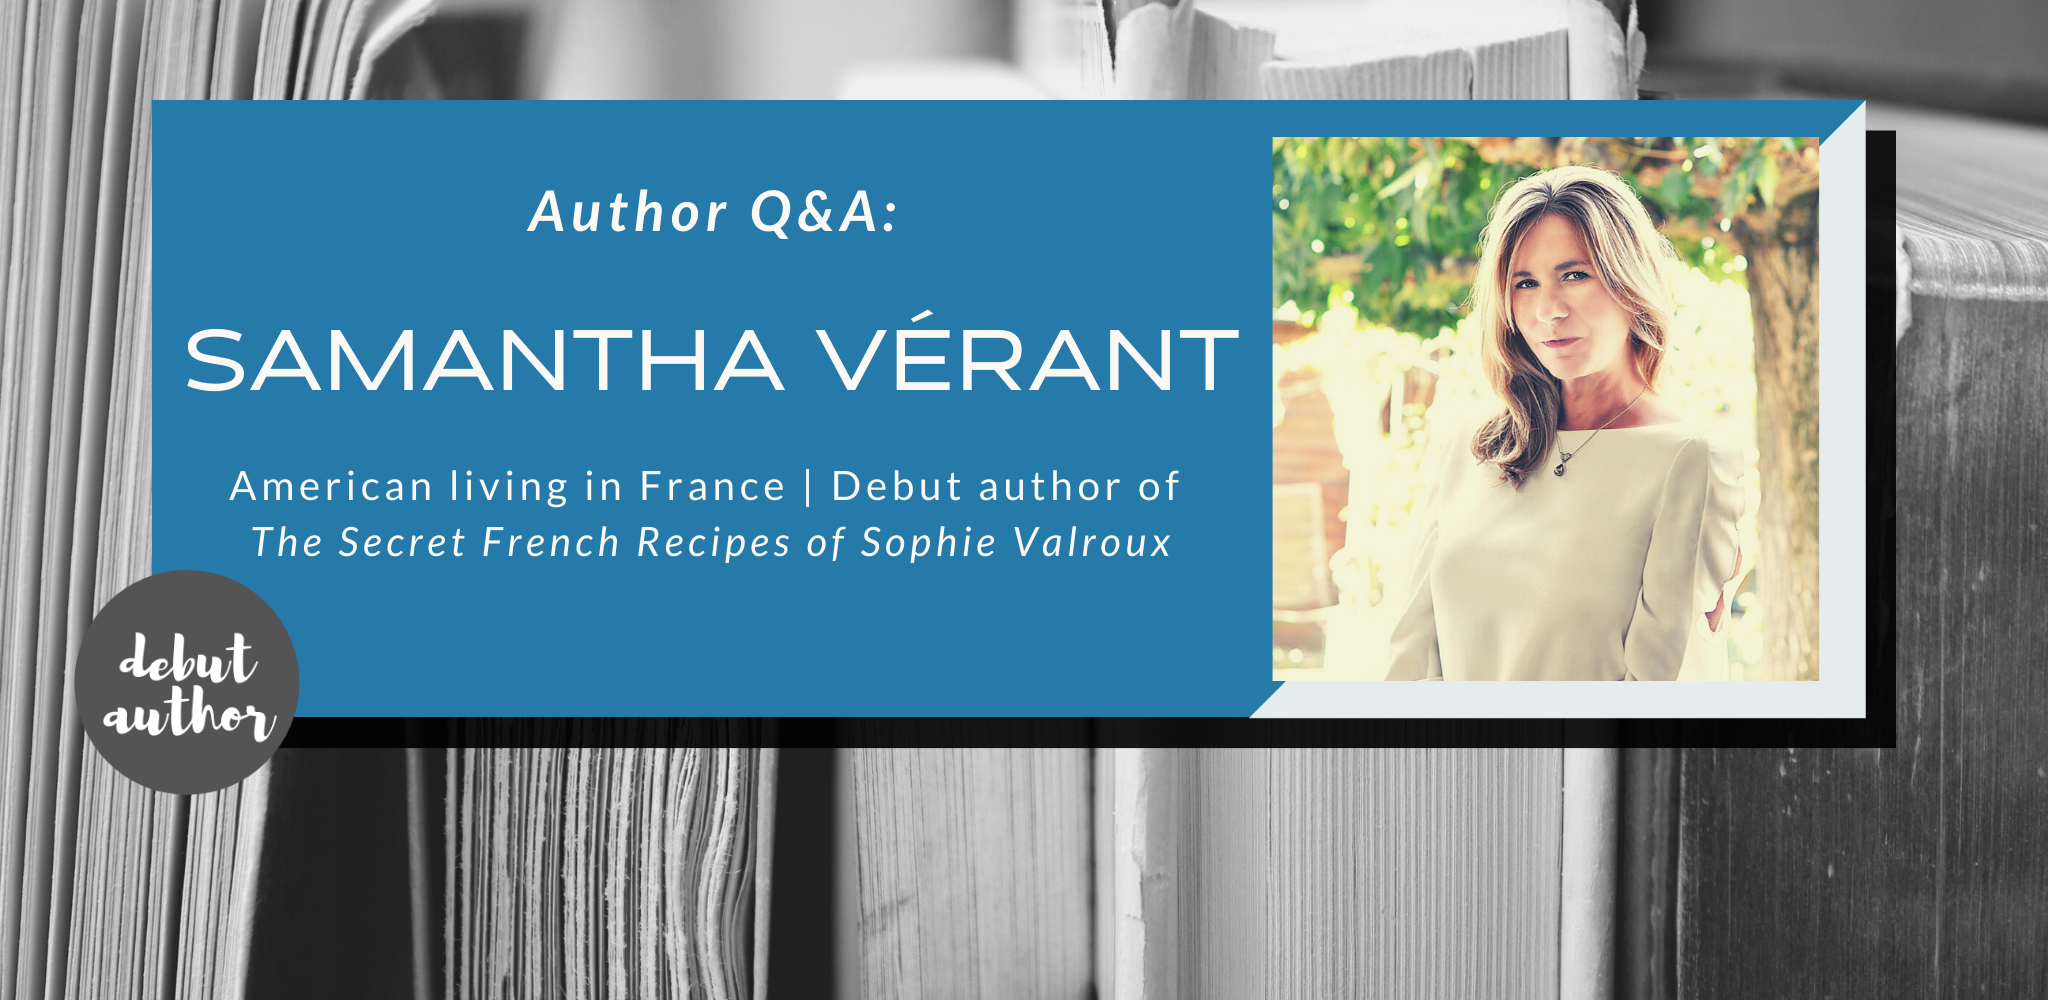 Q&A with Samantha Vérant